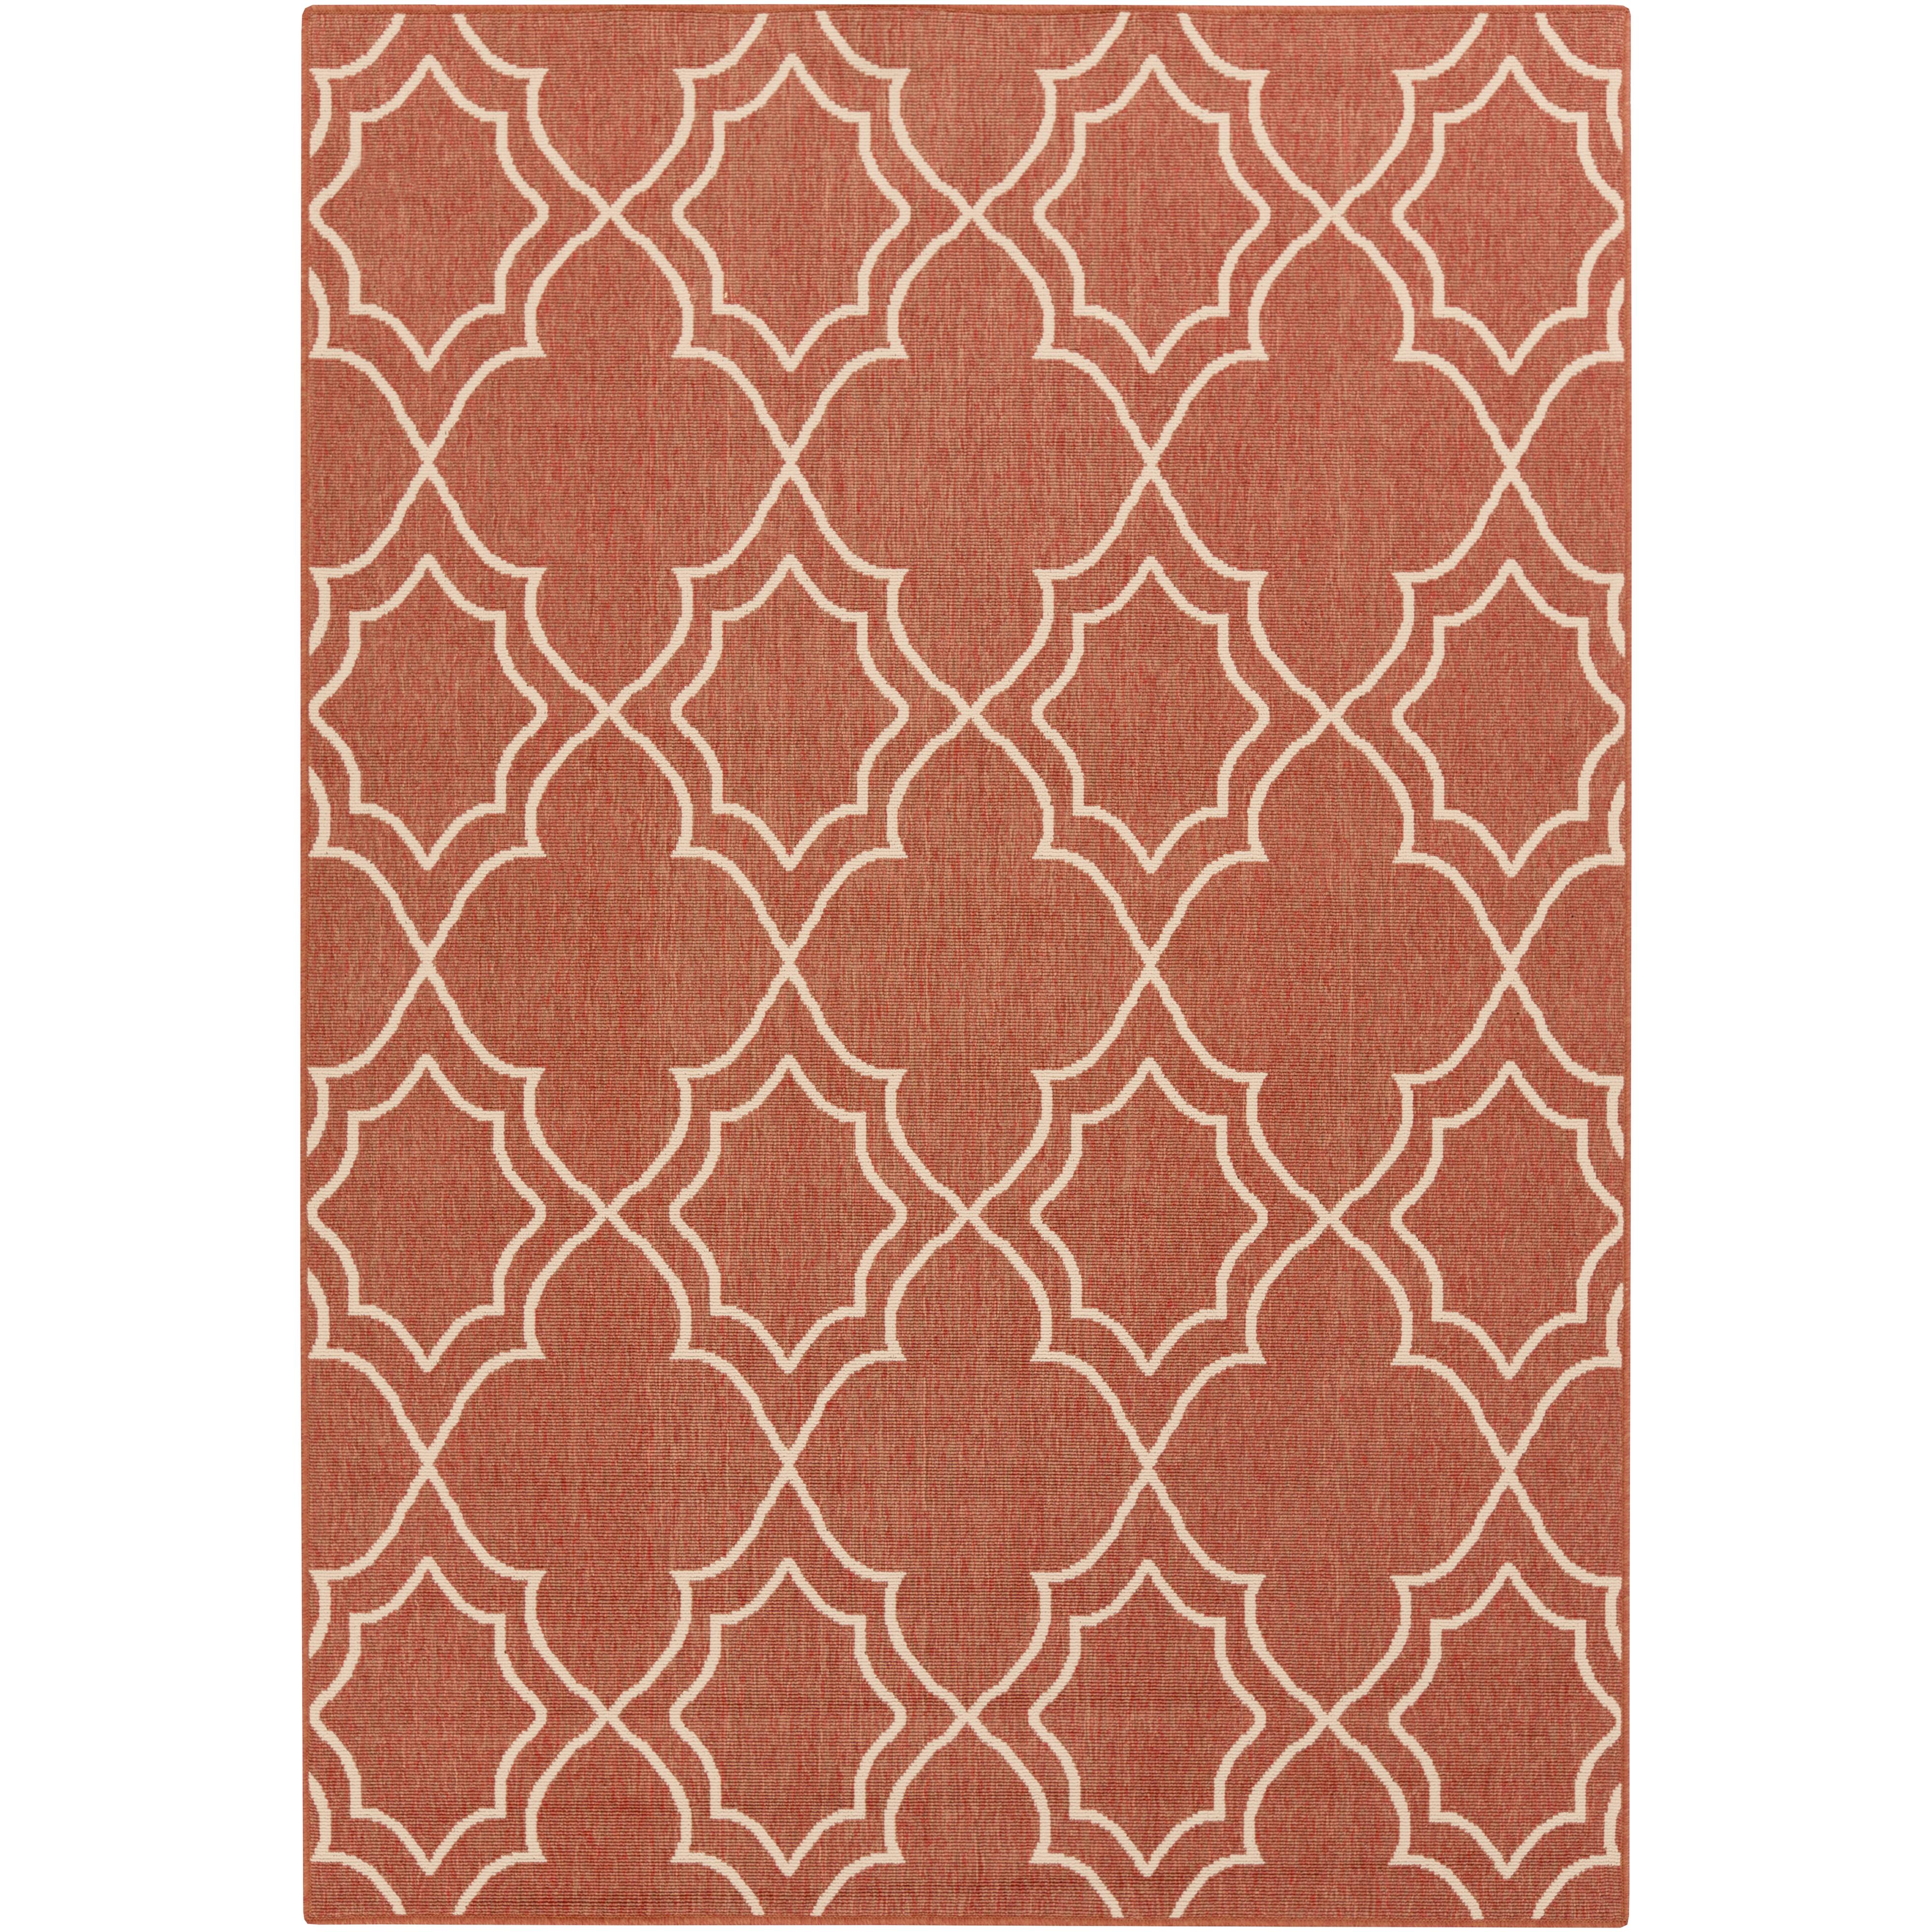 "Surya Rugs Alfresco 5'3"" x 7'6"" - Item Number: ALF9591-5376"